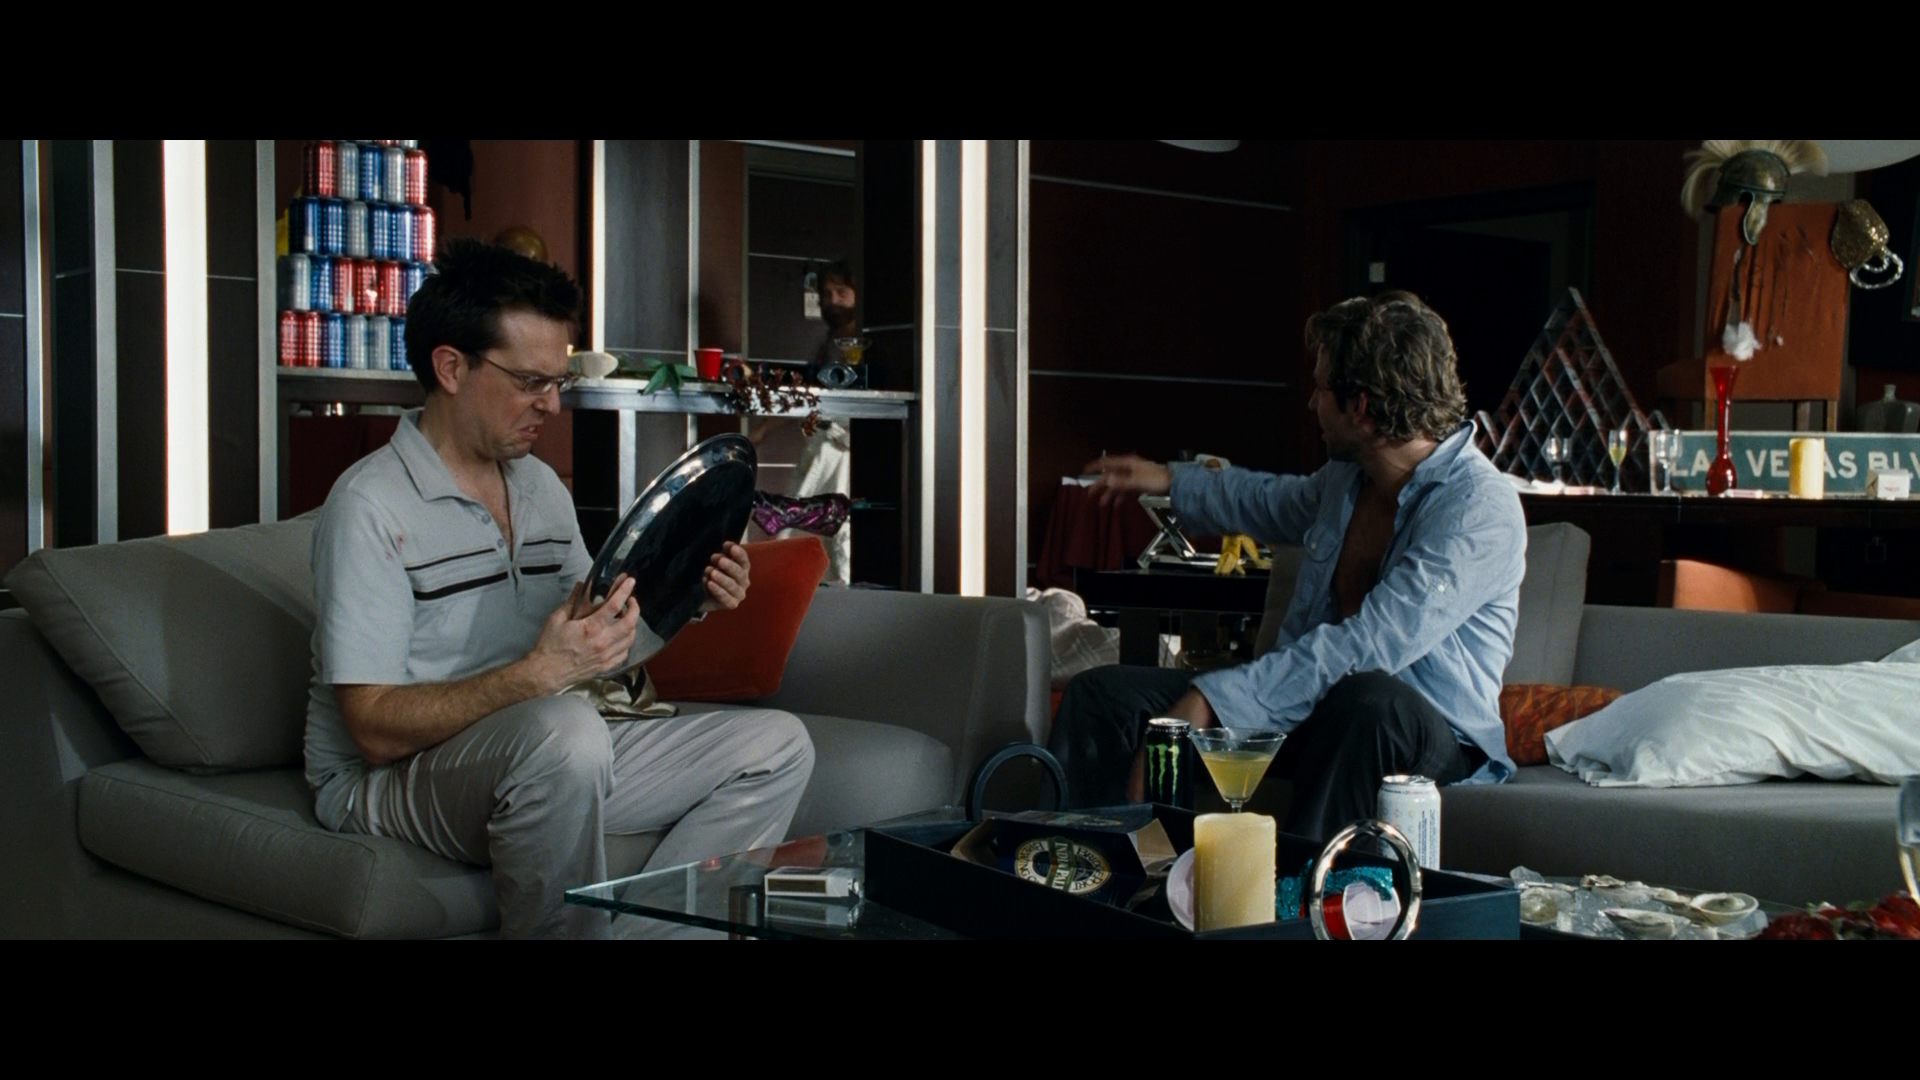 The Hangover 2009 Unrated BluRay REMUX 1080p VC-1 TrueHD 5.1-FraMeSToR